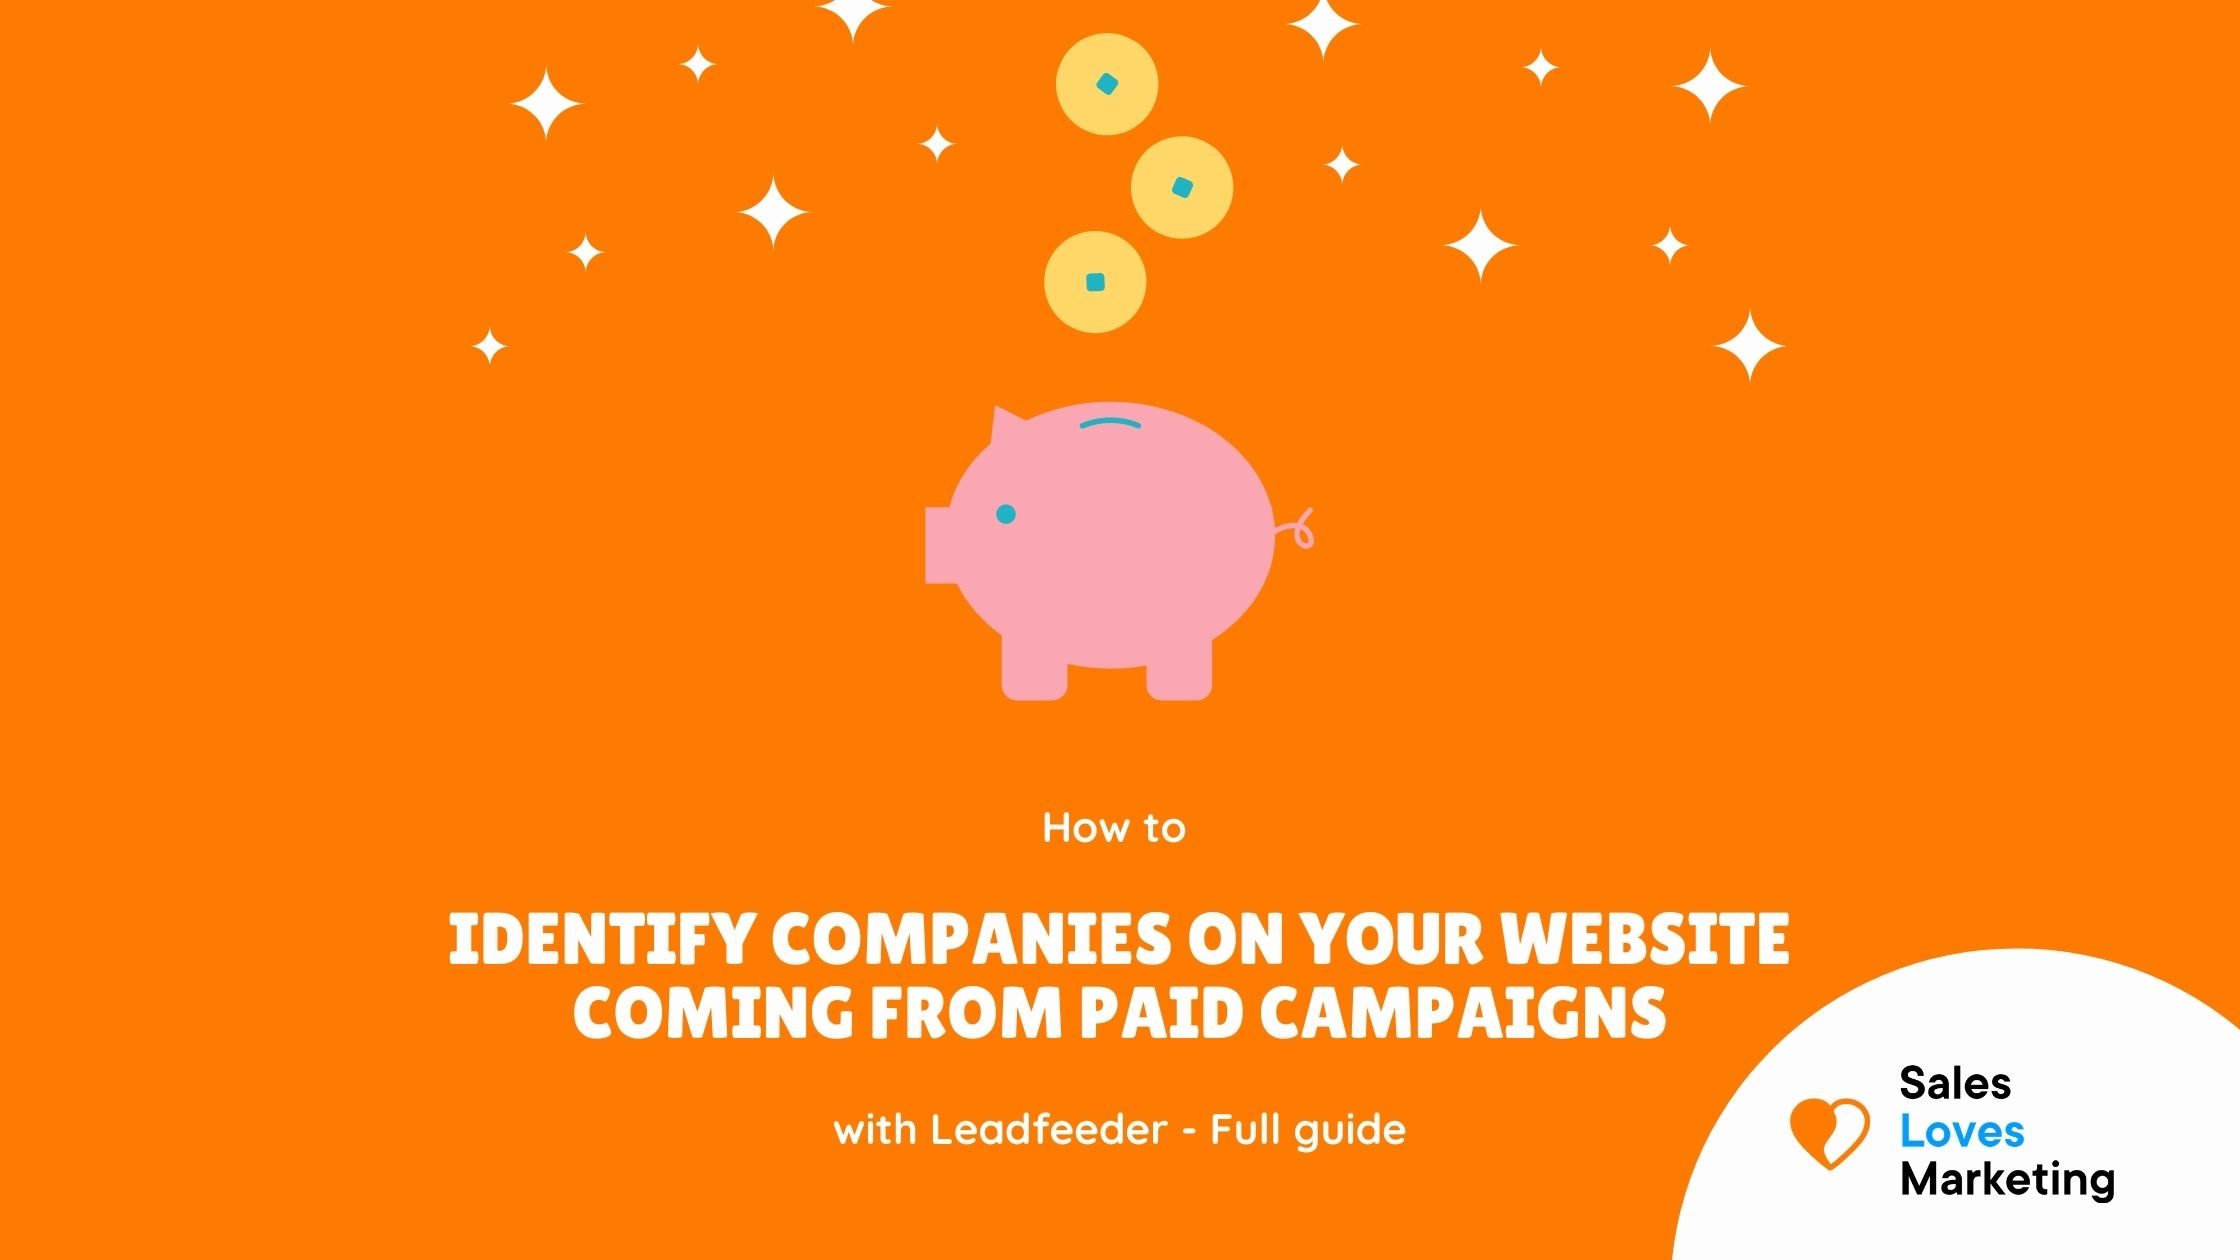 How to identify companies visiting your website from paid campaigns with Leadfeeder